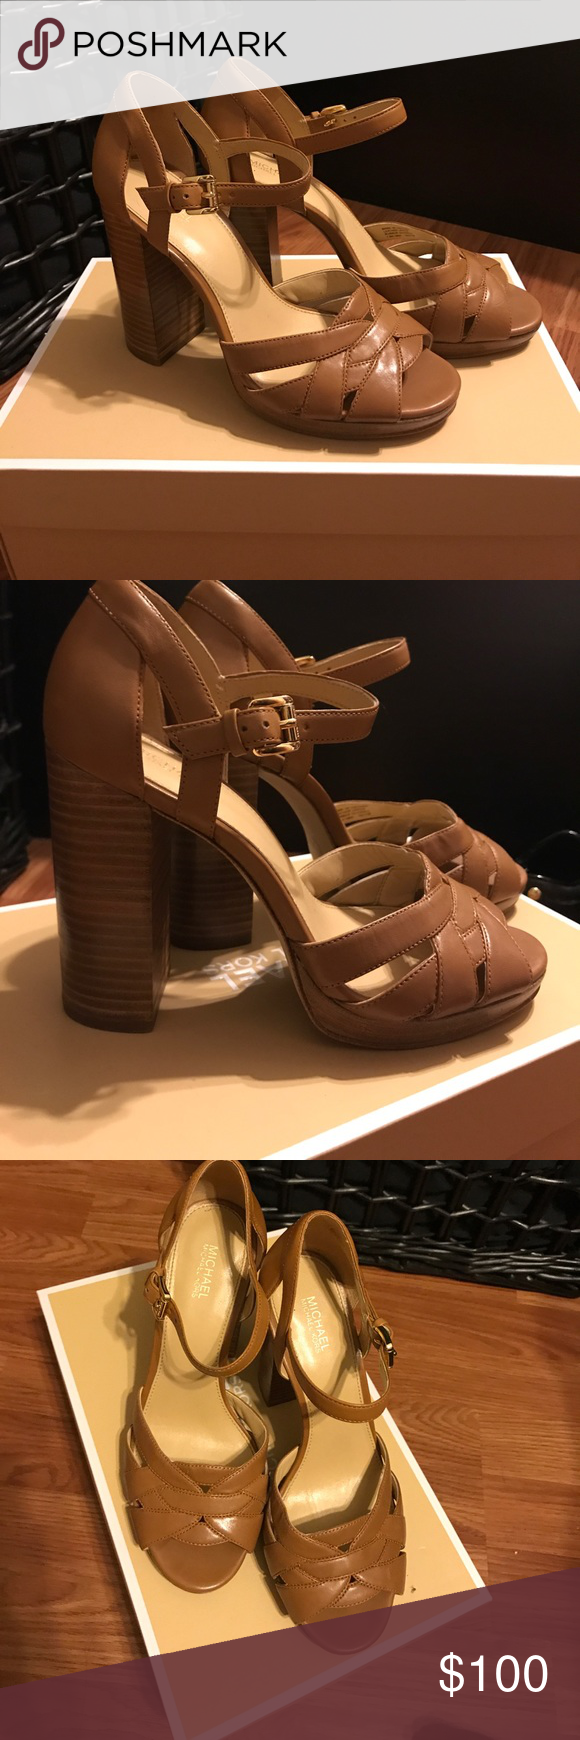 Michael kors Annalise platform Annalise 70's inspired leather platform. The heal is 4.25 inches high and has about a quarter inch platform in front. Extremely comfortable shoe, worn once and are currently being sold in MK stores. MICHAEL Michael Kors Shoes Heels